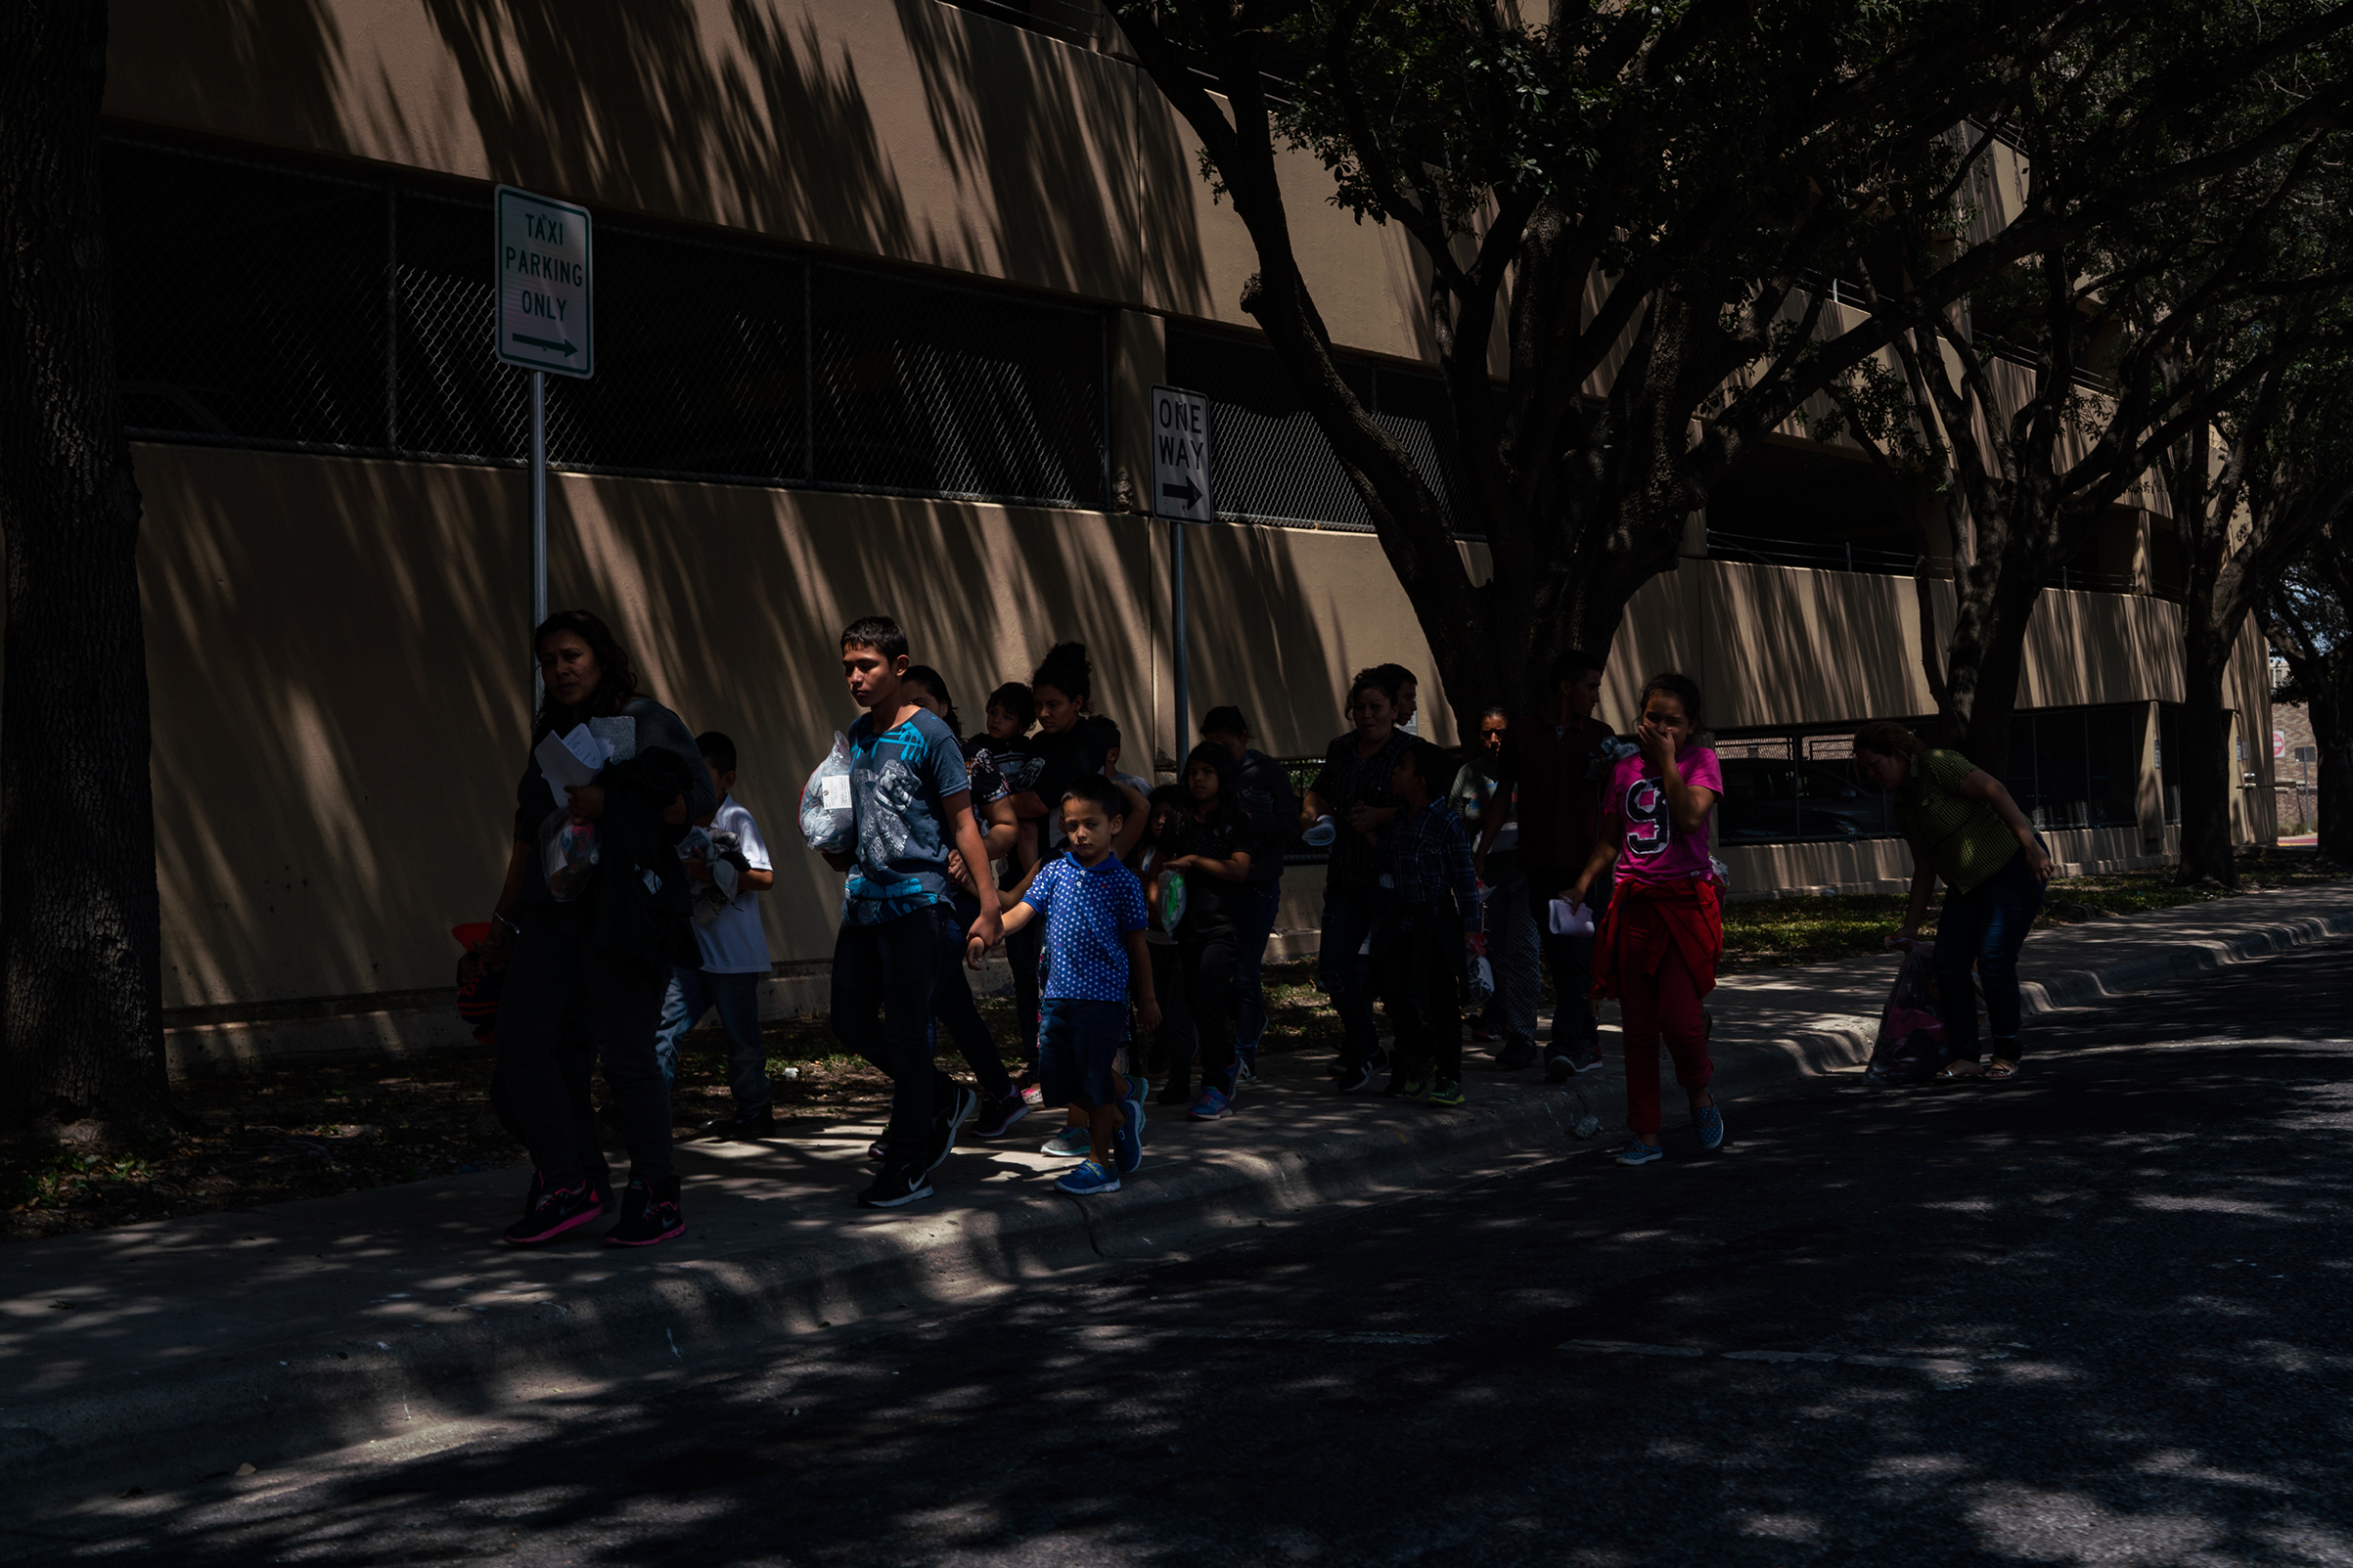 Central American asylum seekers walk to the nearby Catholic Charities Humanitarian Respite Center after being dropped off at the McAllen bus station on Aug. 2, 2018.